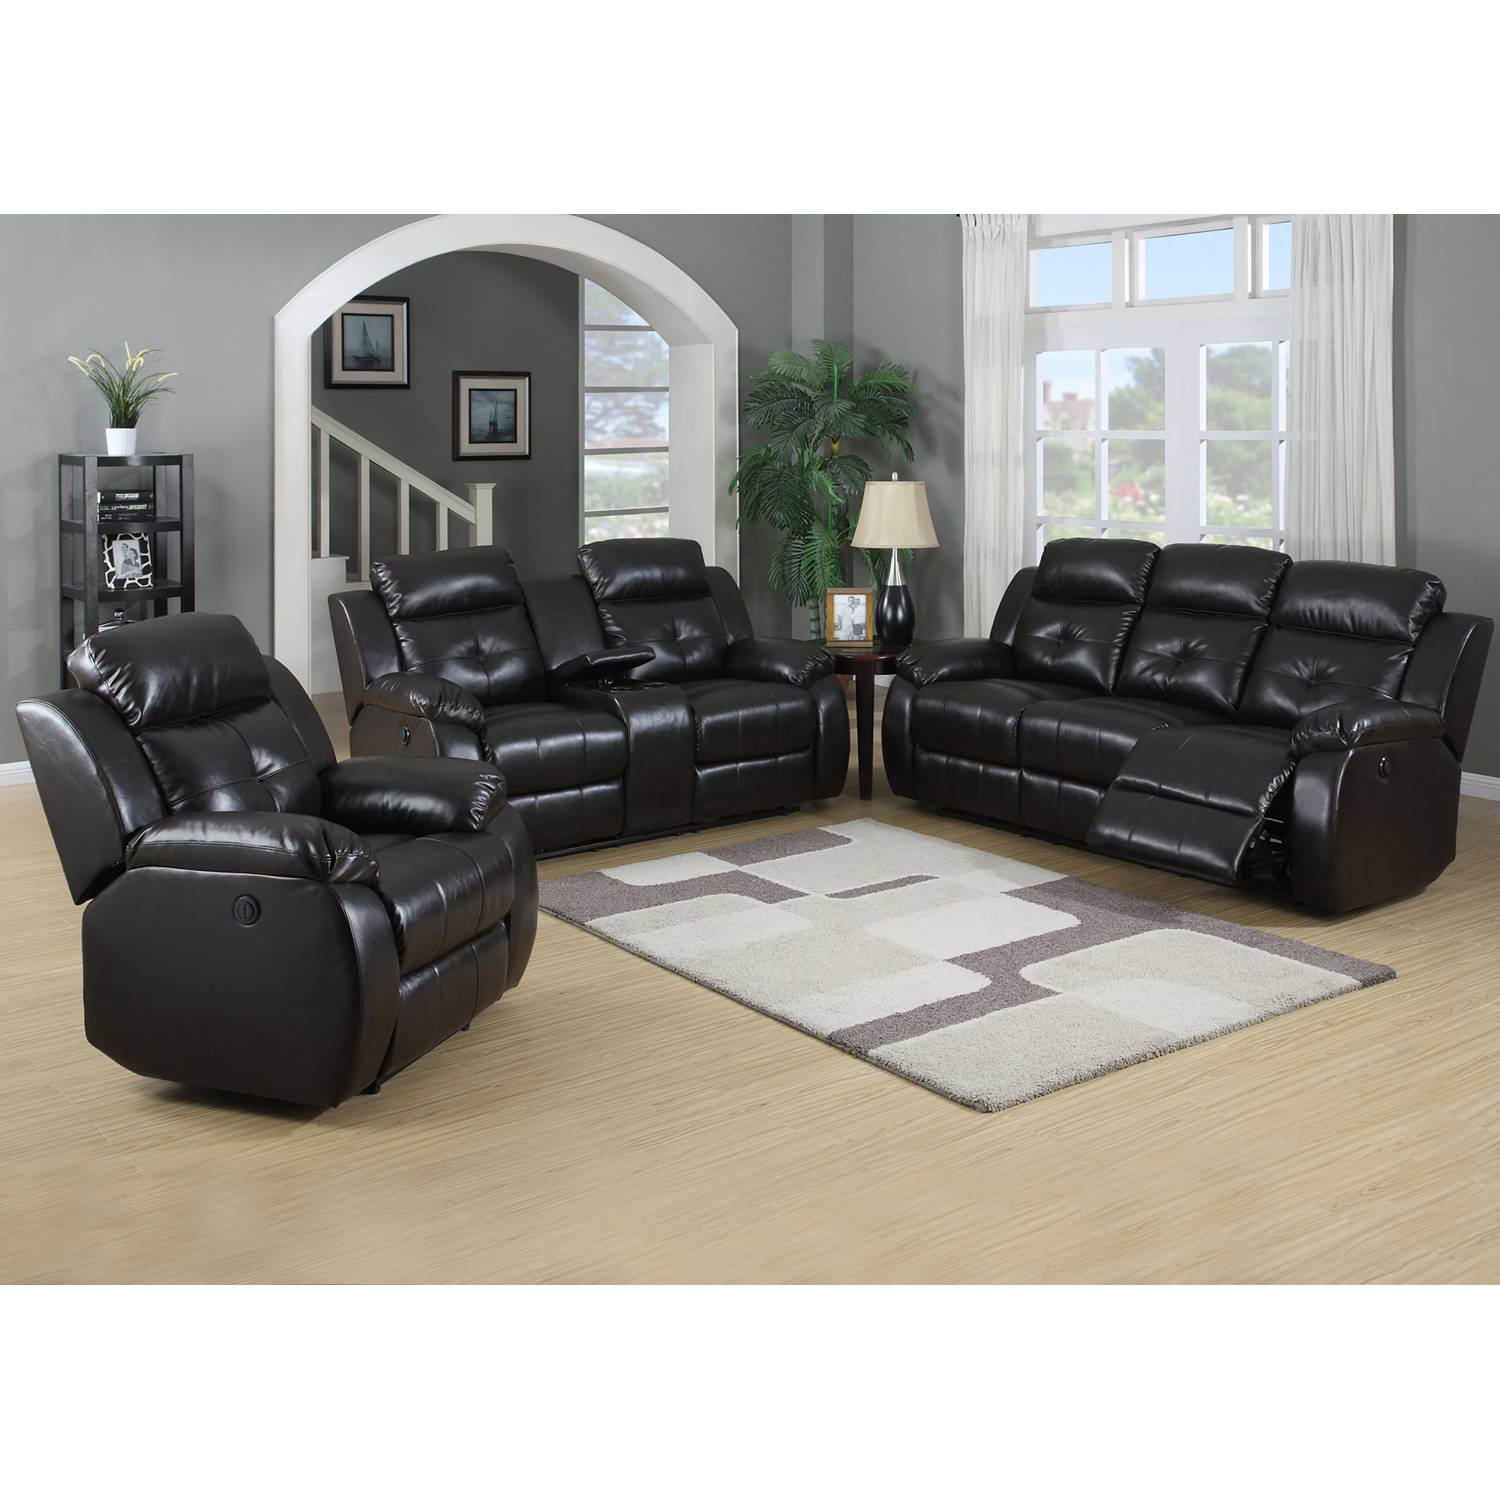 TROY BROWN 2 PCS POWER RECLINING SOFA LOVESEAT SET